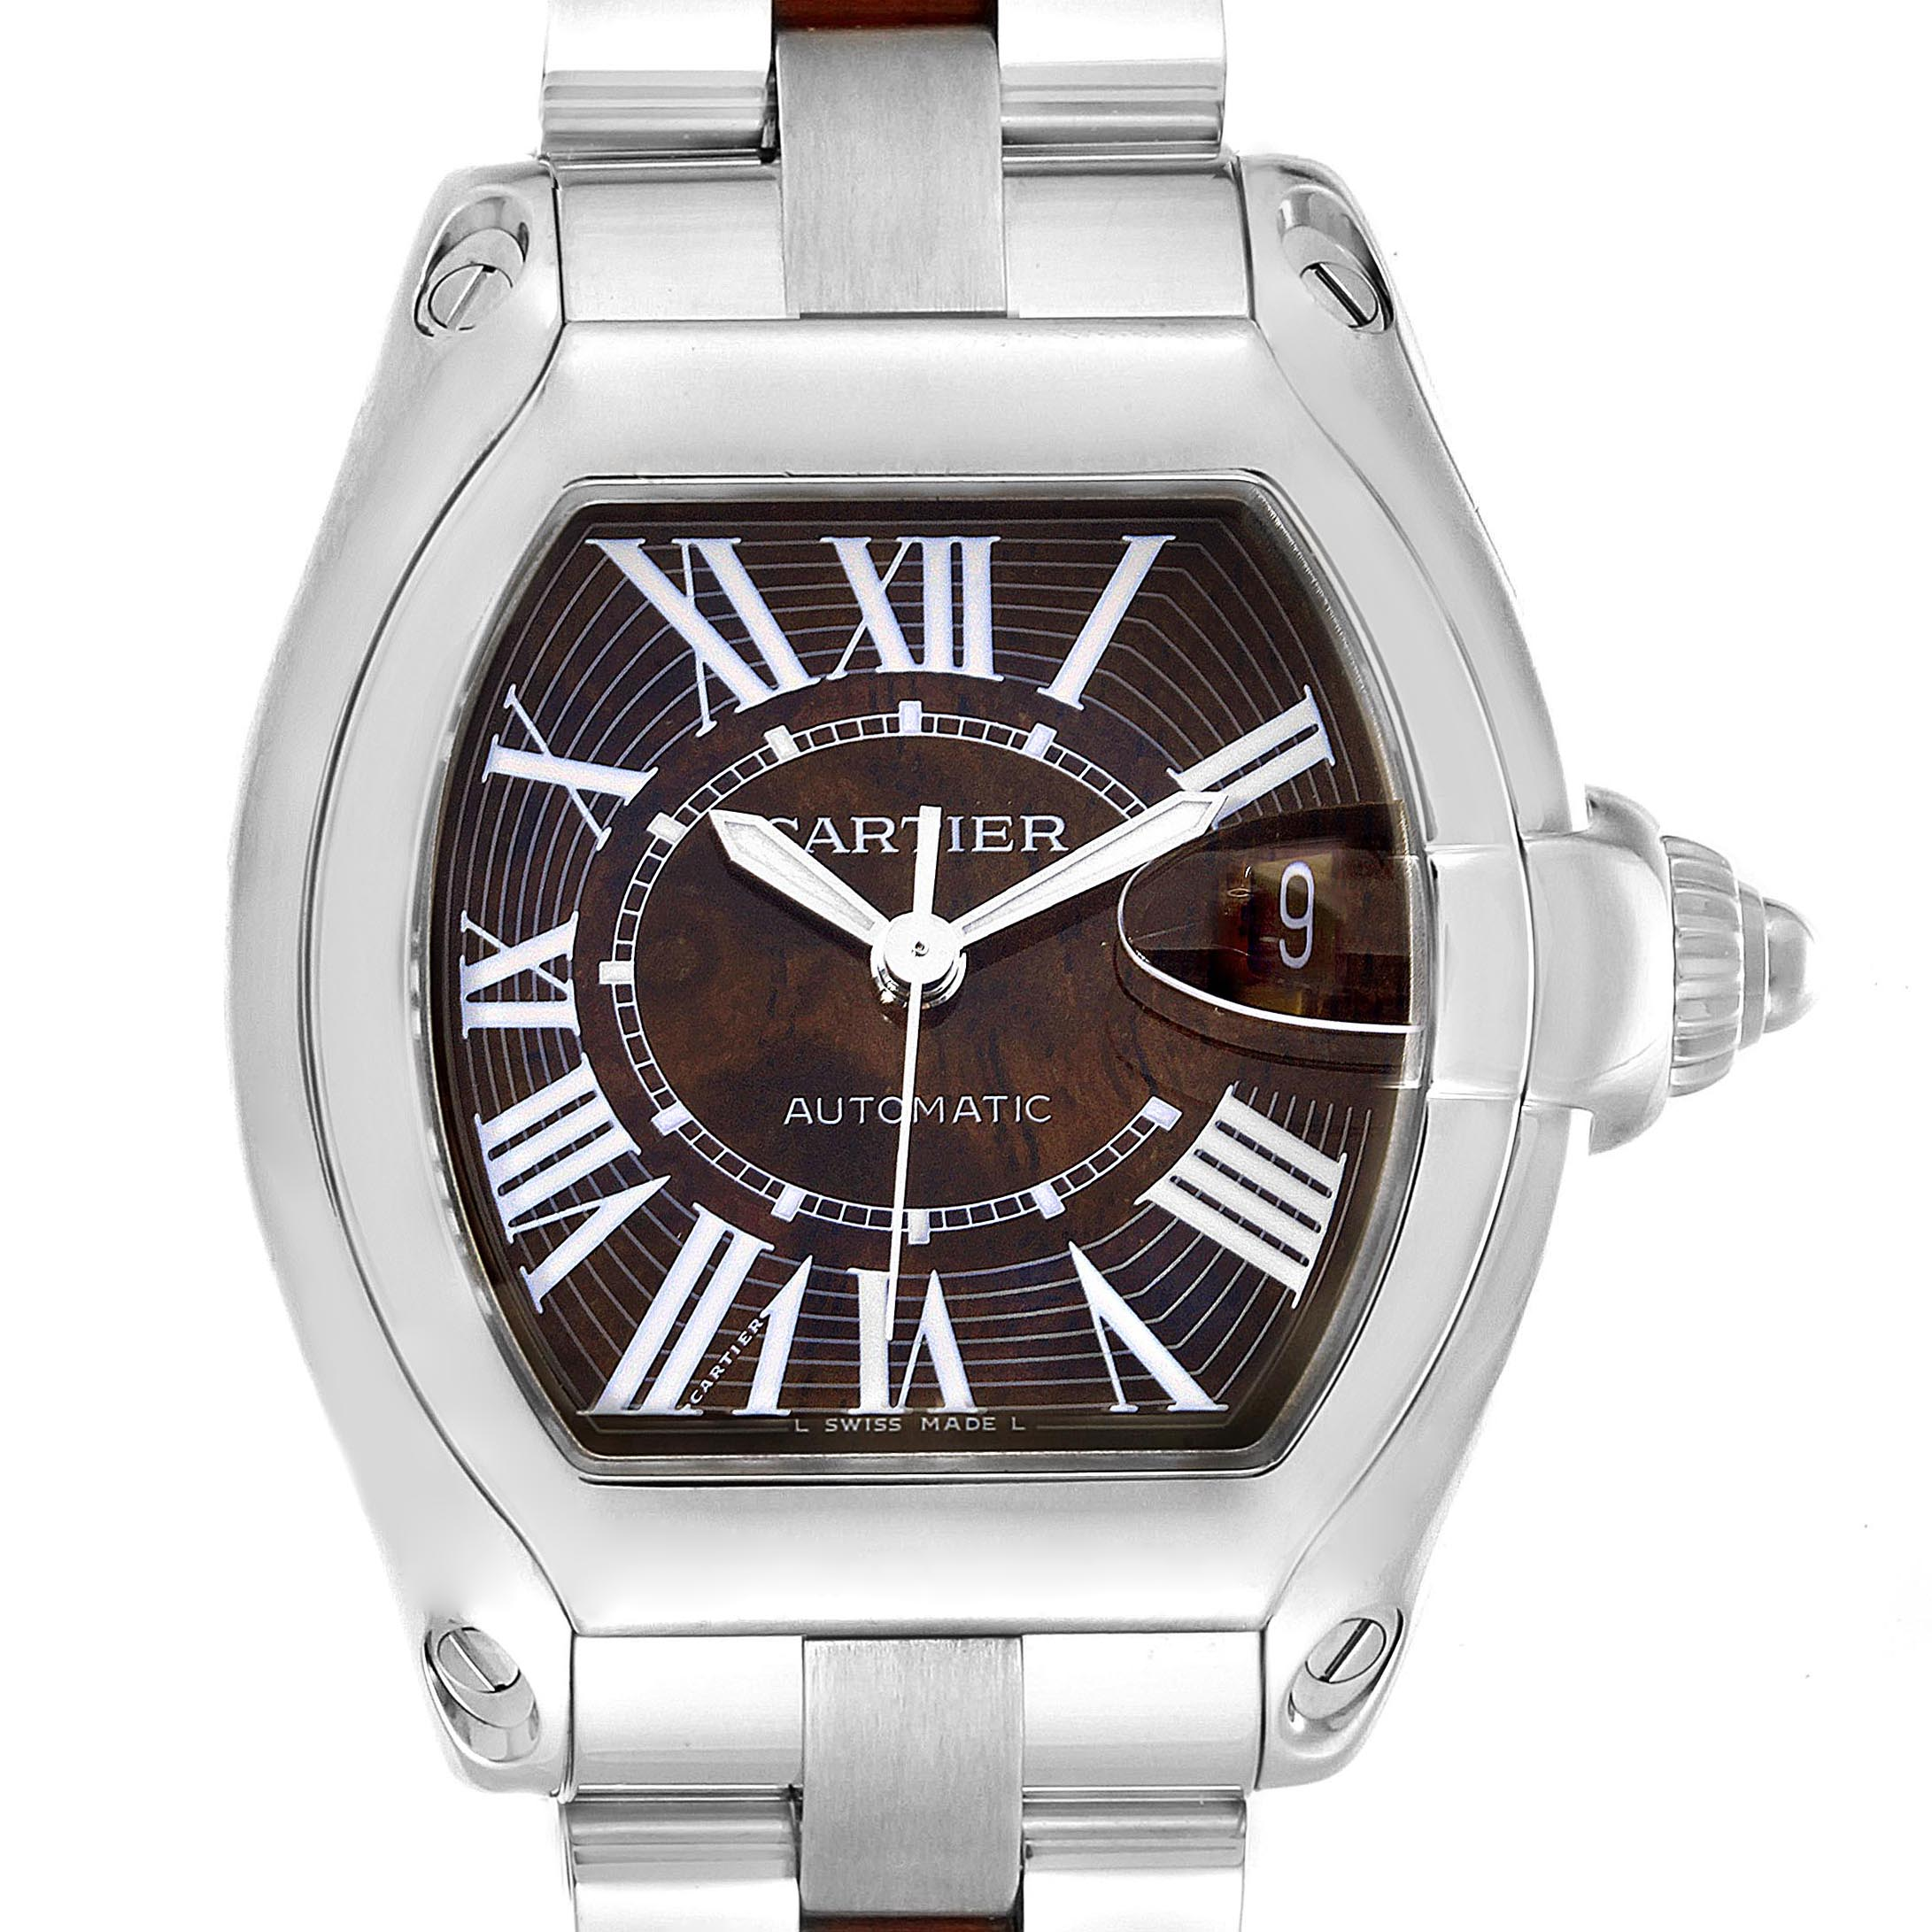 Photo of Cartier Roadster XL White Gold Walnut Wood Limited Edition Watch W6206000